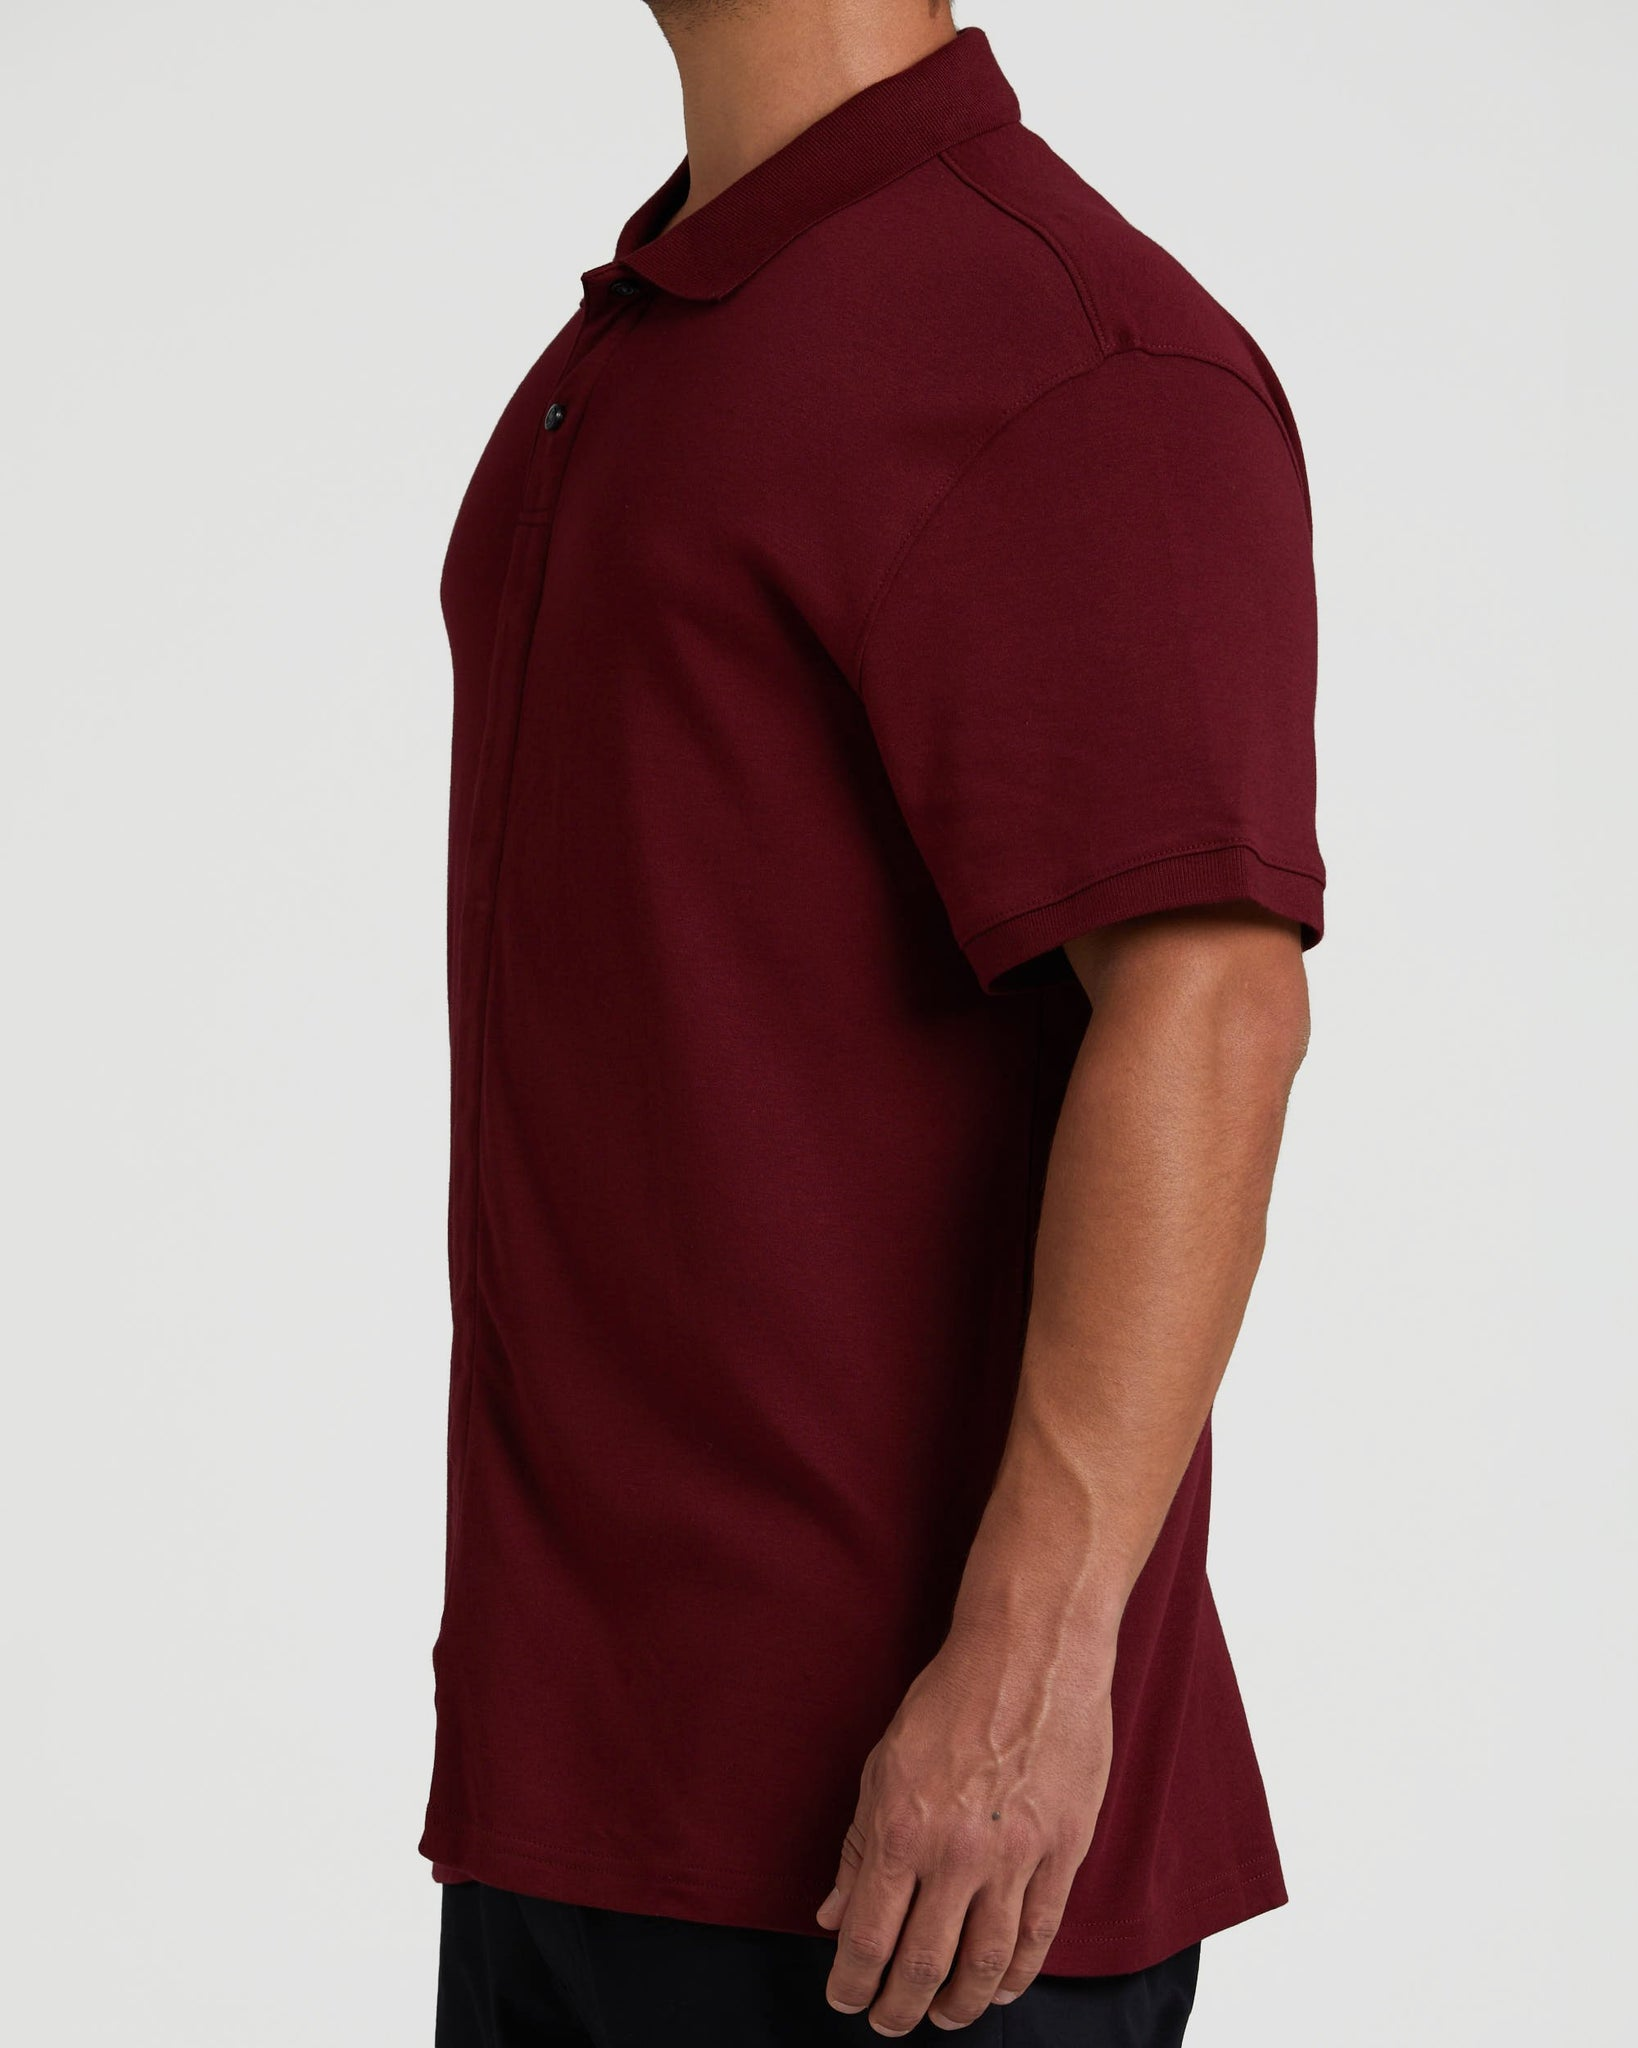 https://cdn.shopify.com/s/files/1/0249/6141/7252/files/Magna_Ready_-_Mens_-_Polo_-_Burgandy-fade.mp4?4372